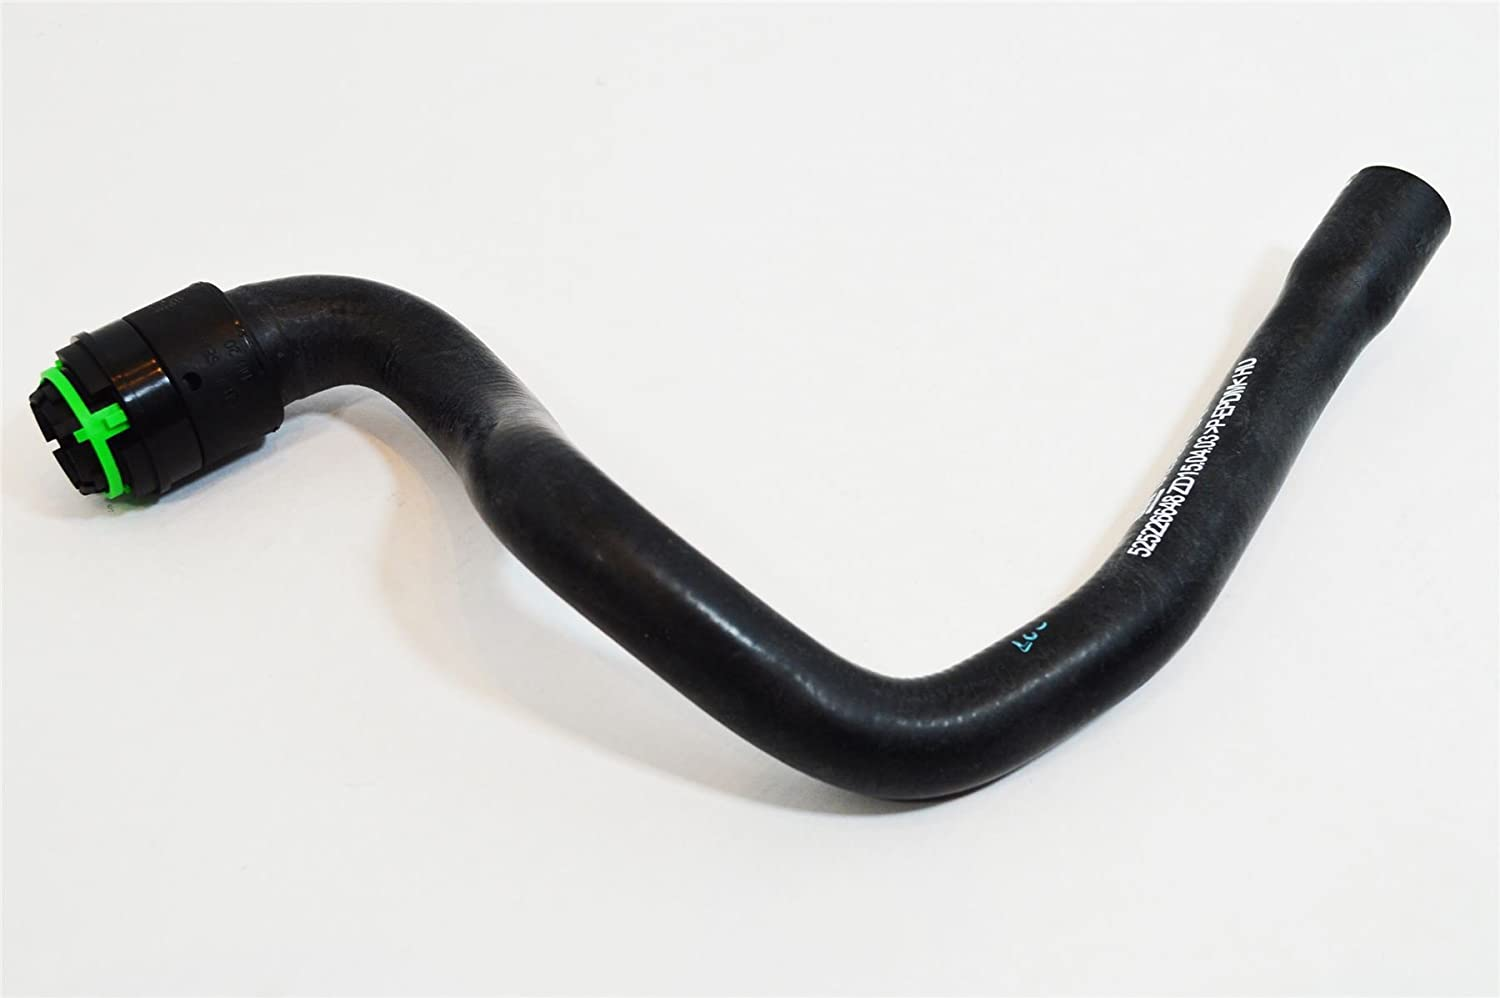 13123420 : GENUINE HEATER INLET HOSE - 1.2/1.4 - NEW from LSC Genuine Vauxhall